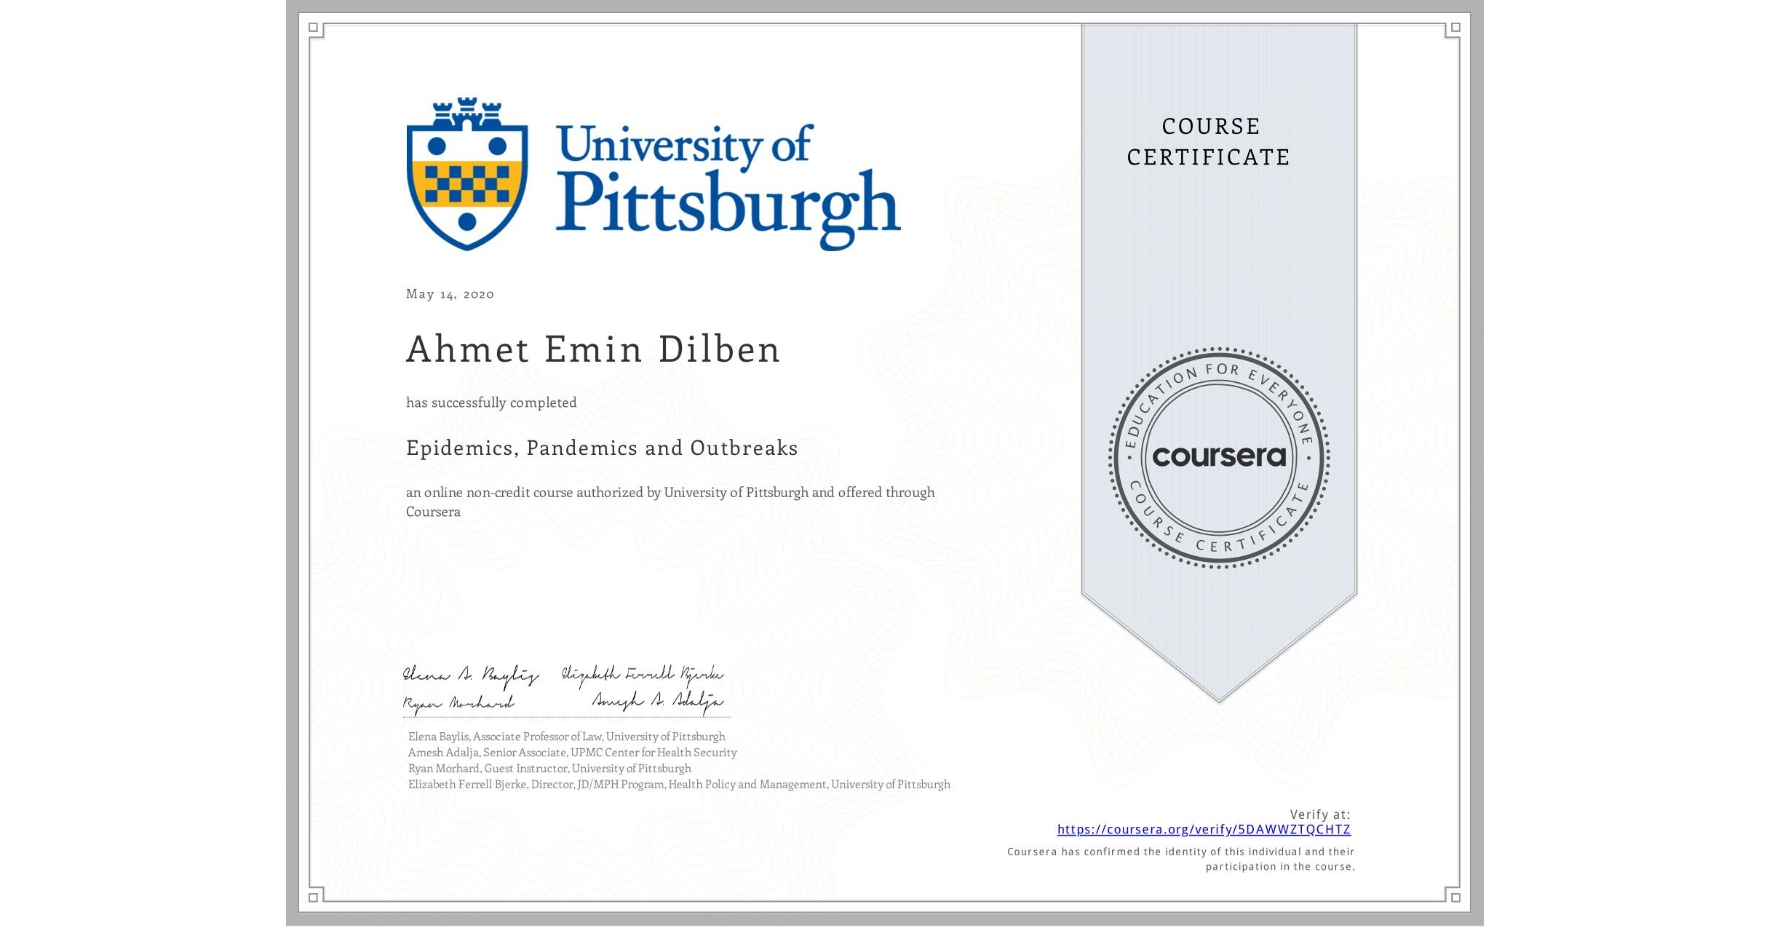 View certificate for Ahmet Emin Dilben, Epidemics, Pandemics and Outbreaks, an online non-credit course authorized by University of Pittsburgh and offered through Coursera